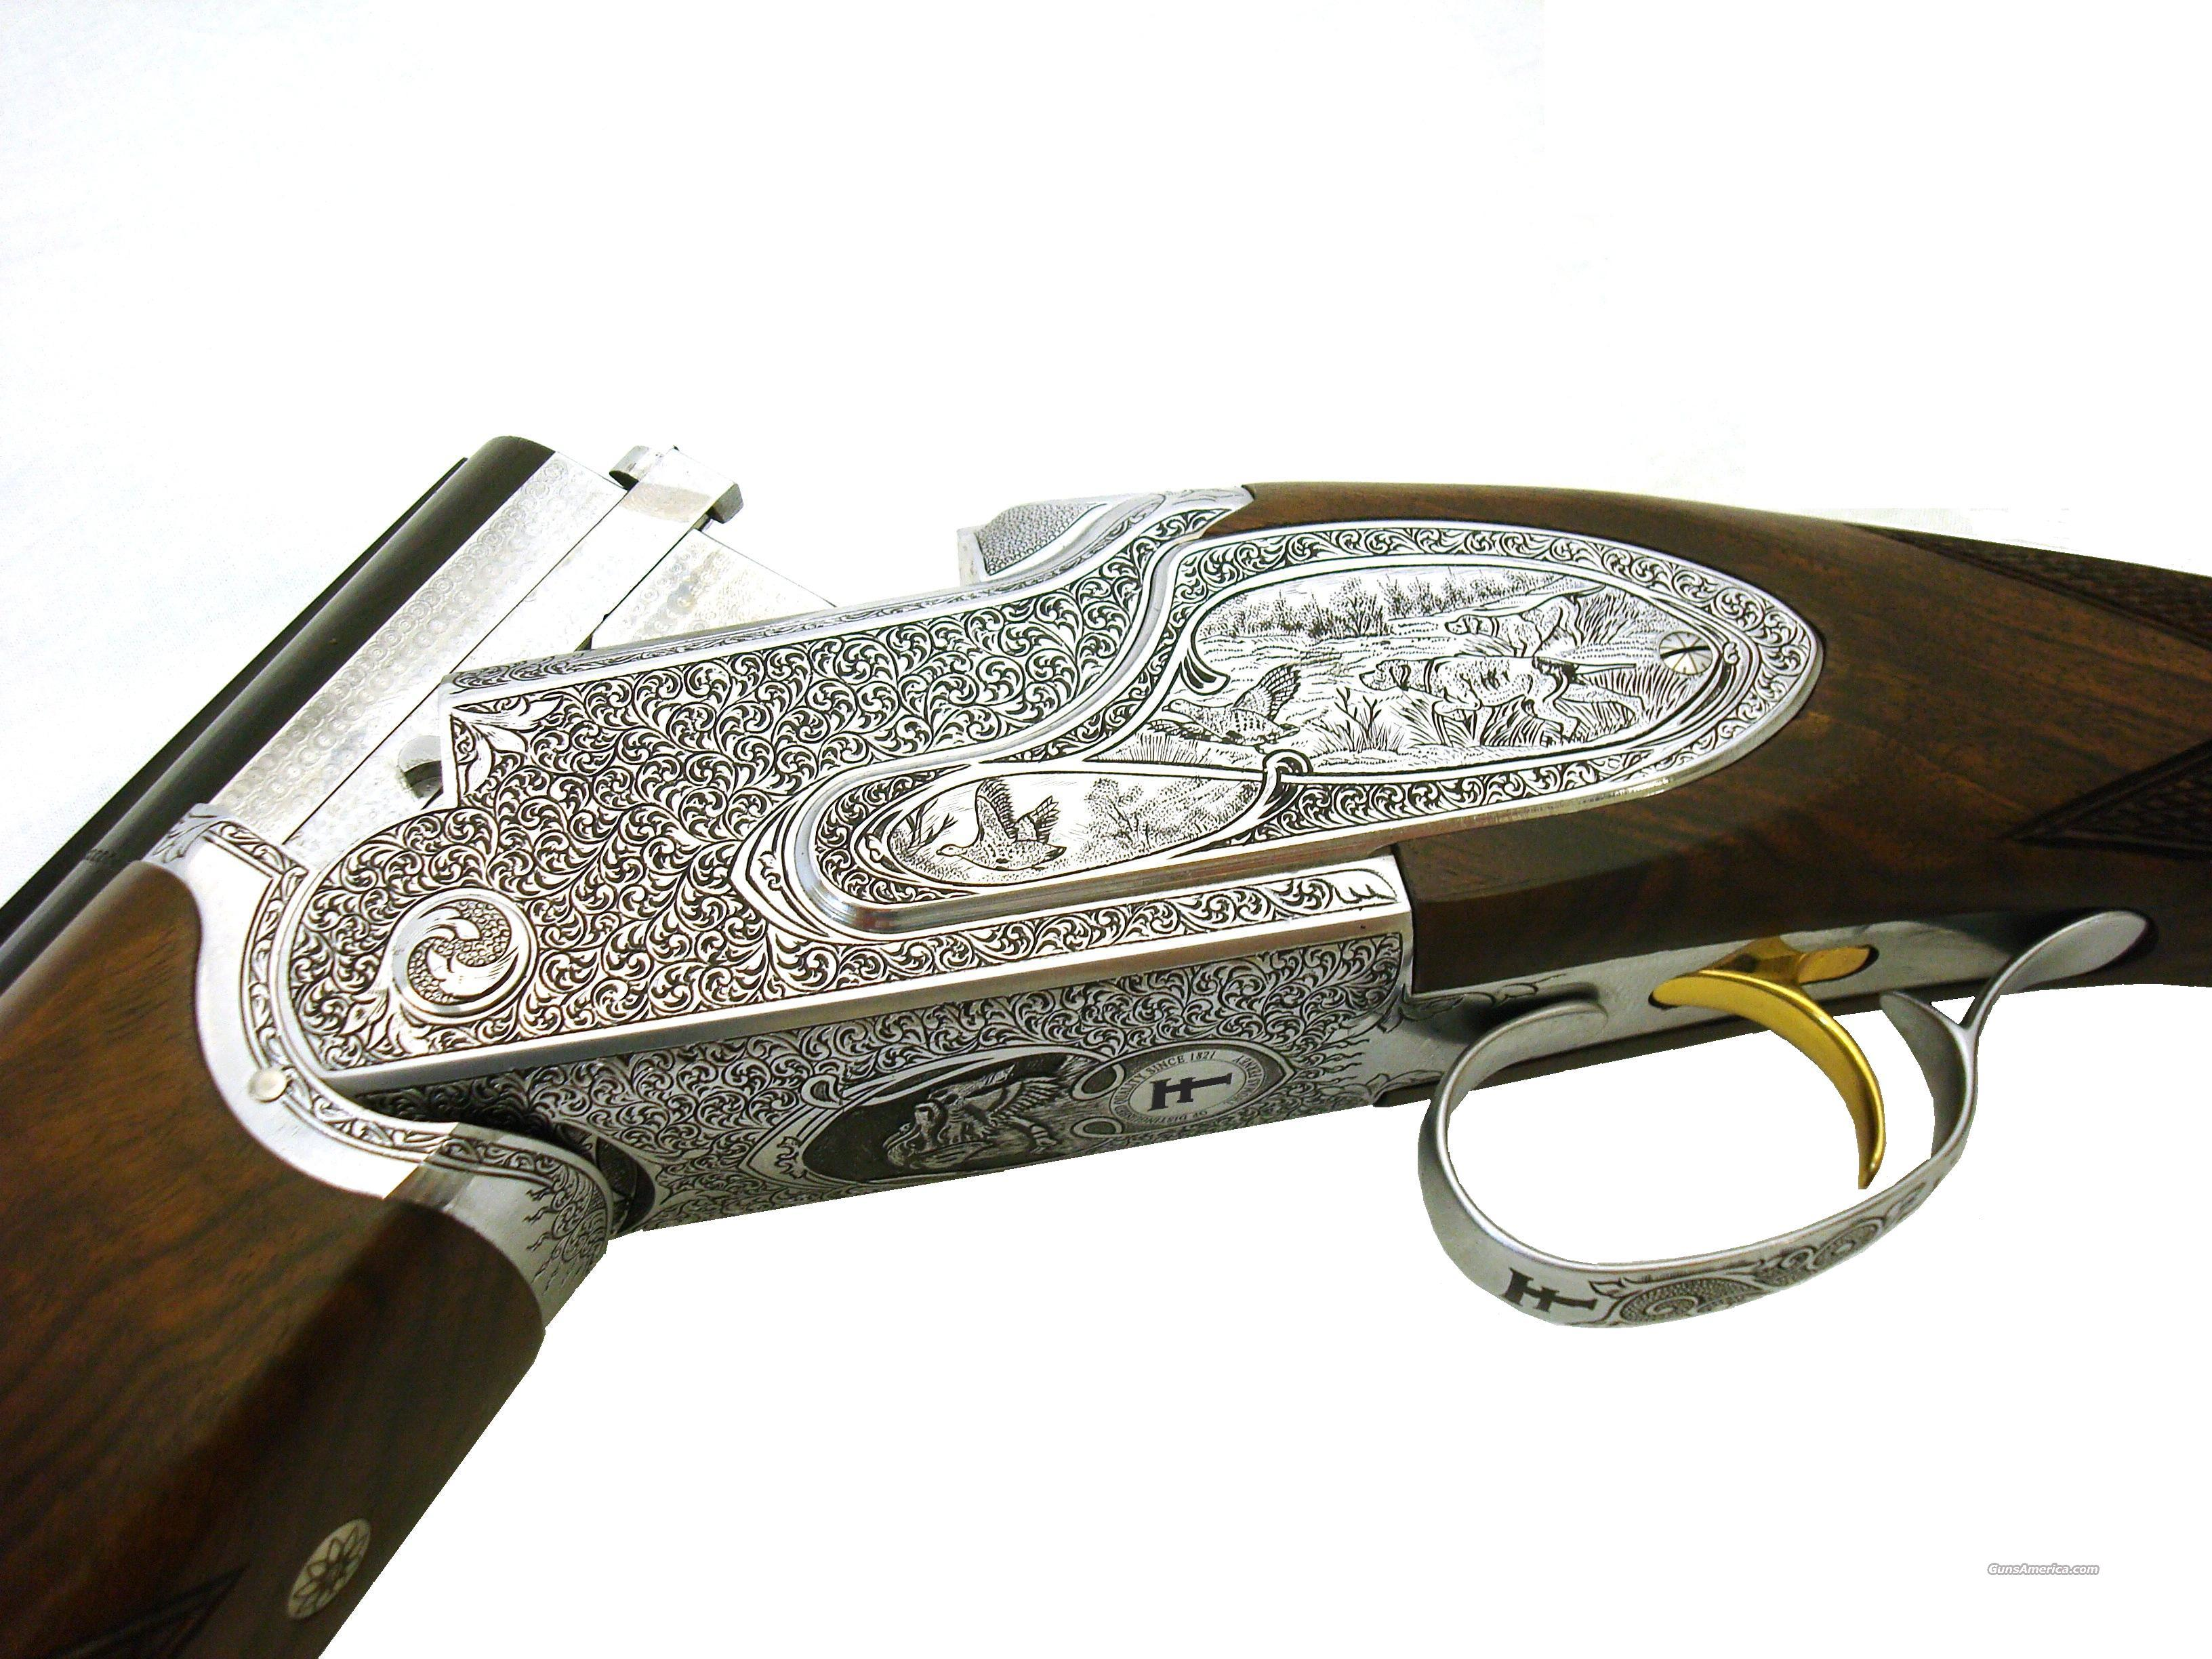 "Thomas Ferney Milazzo Model Over and Under, 12ga, 3"" Chamber, Hand Engraved Full Side Plates, w/ Gd 4 Turkish Walnut W/ Ejectors and Manual Safety   Guns > Shotguns > Double Shotguns (Misc.)  > American"